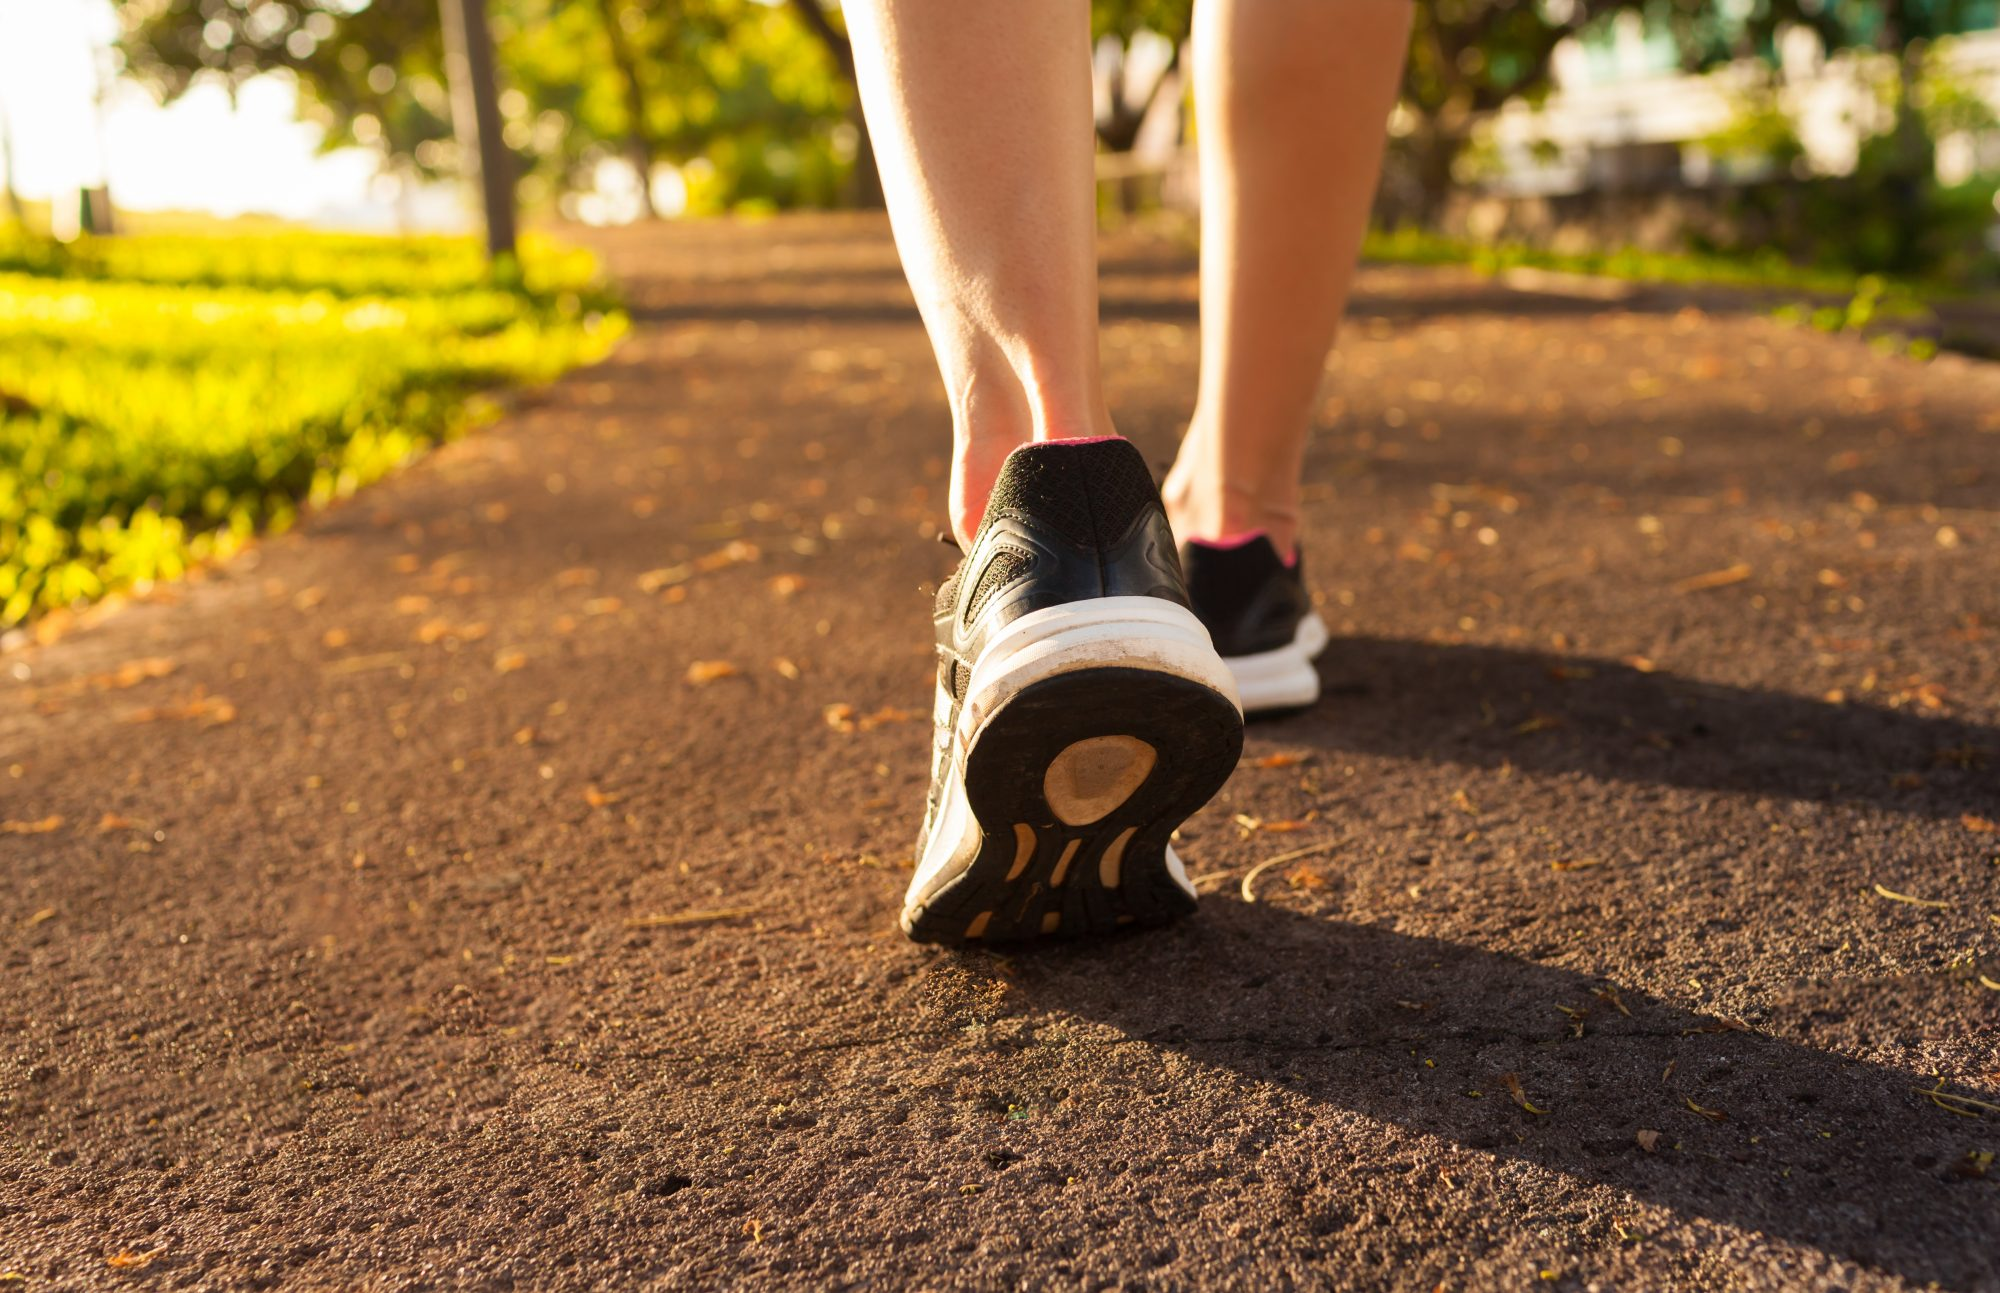 Just One Hour of Exercise a Week May Help Prevent Depression